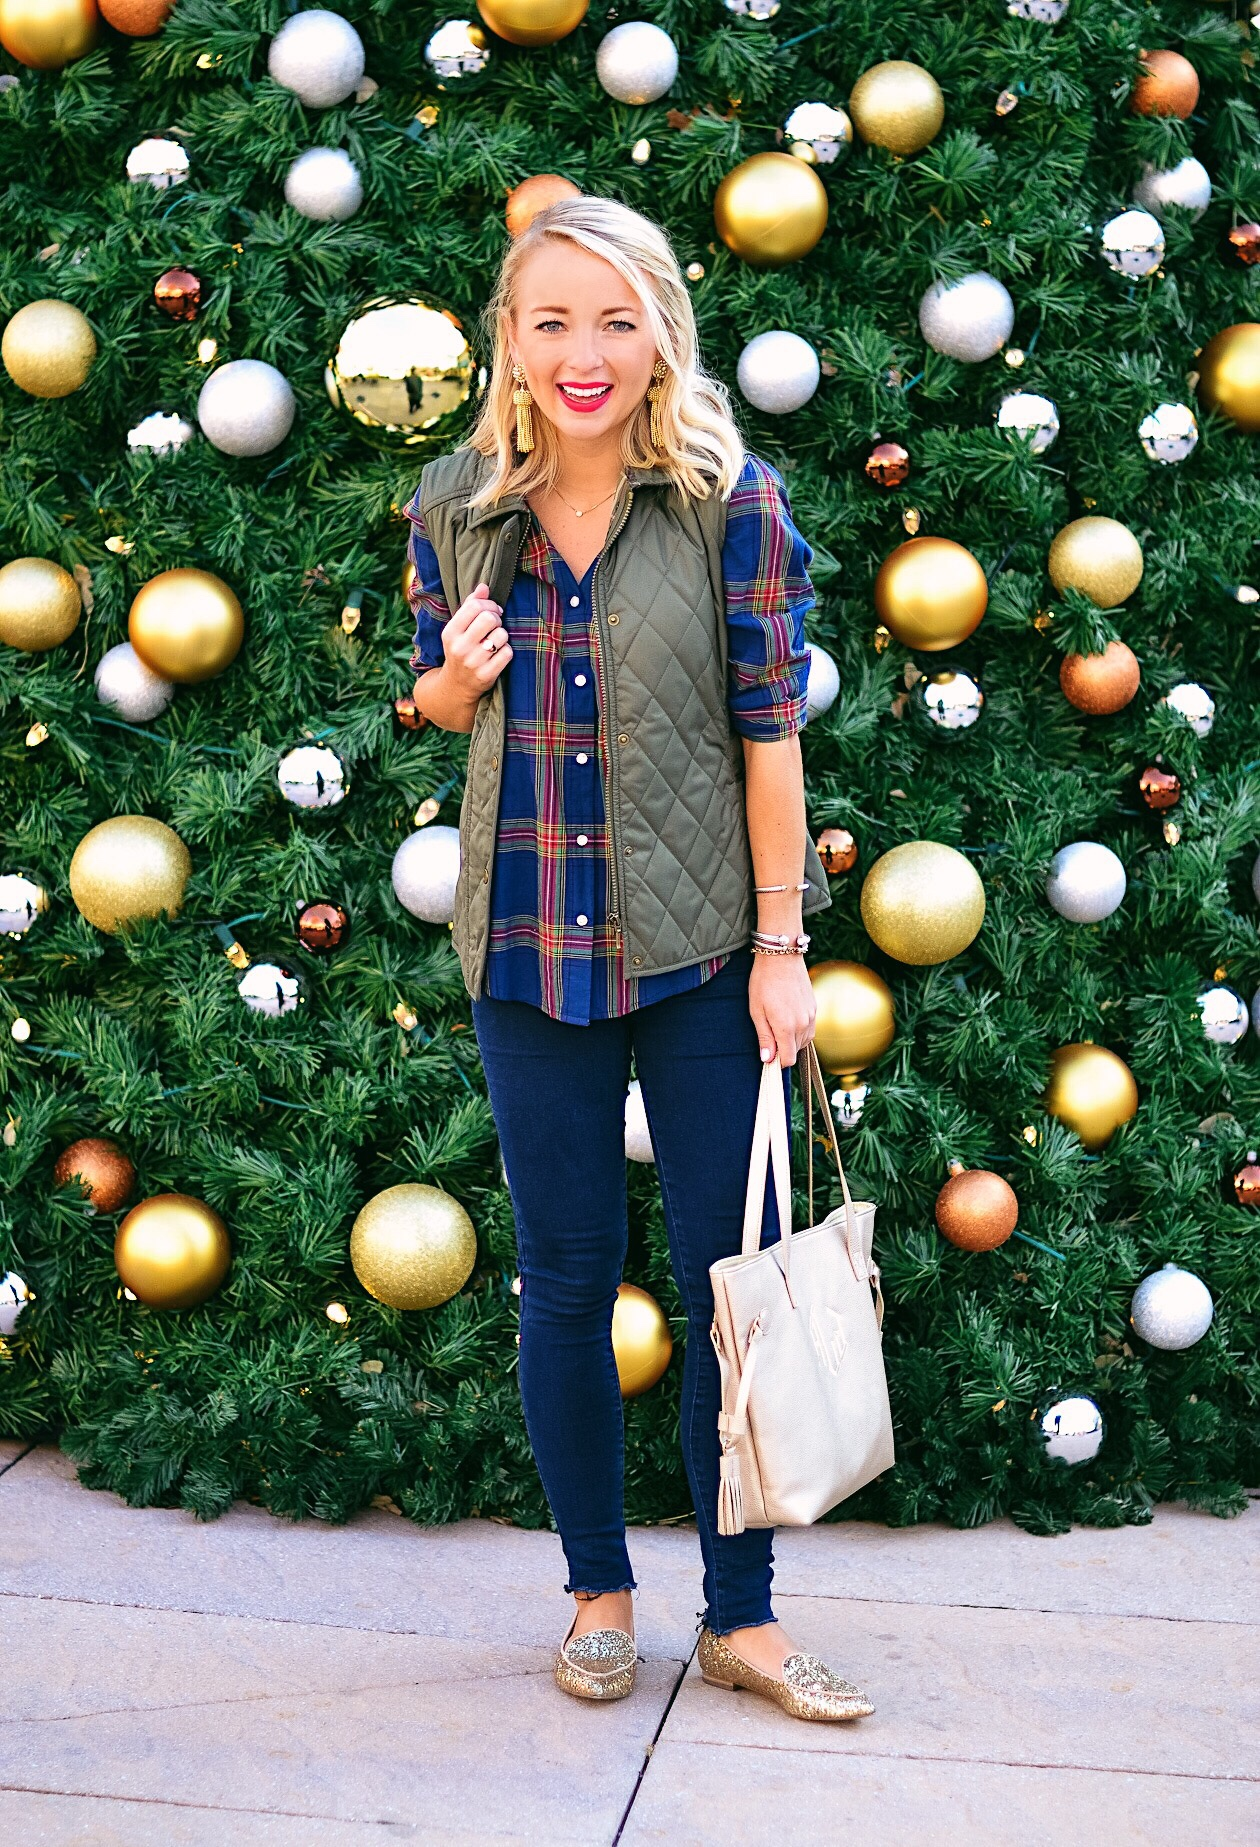 Plaid top and quilted vest with gold glitter flats